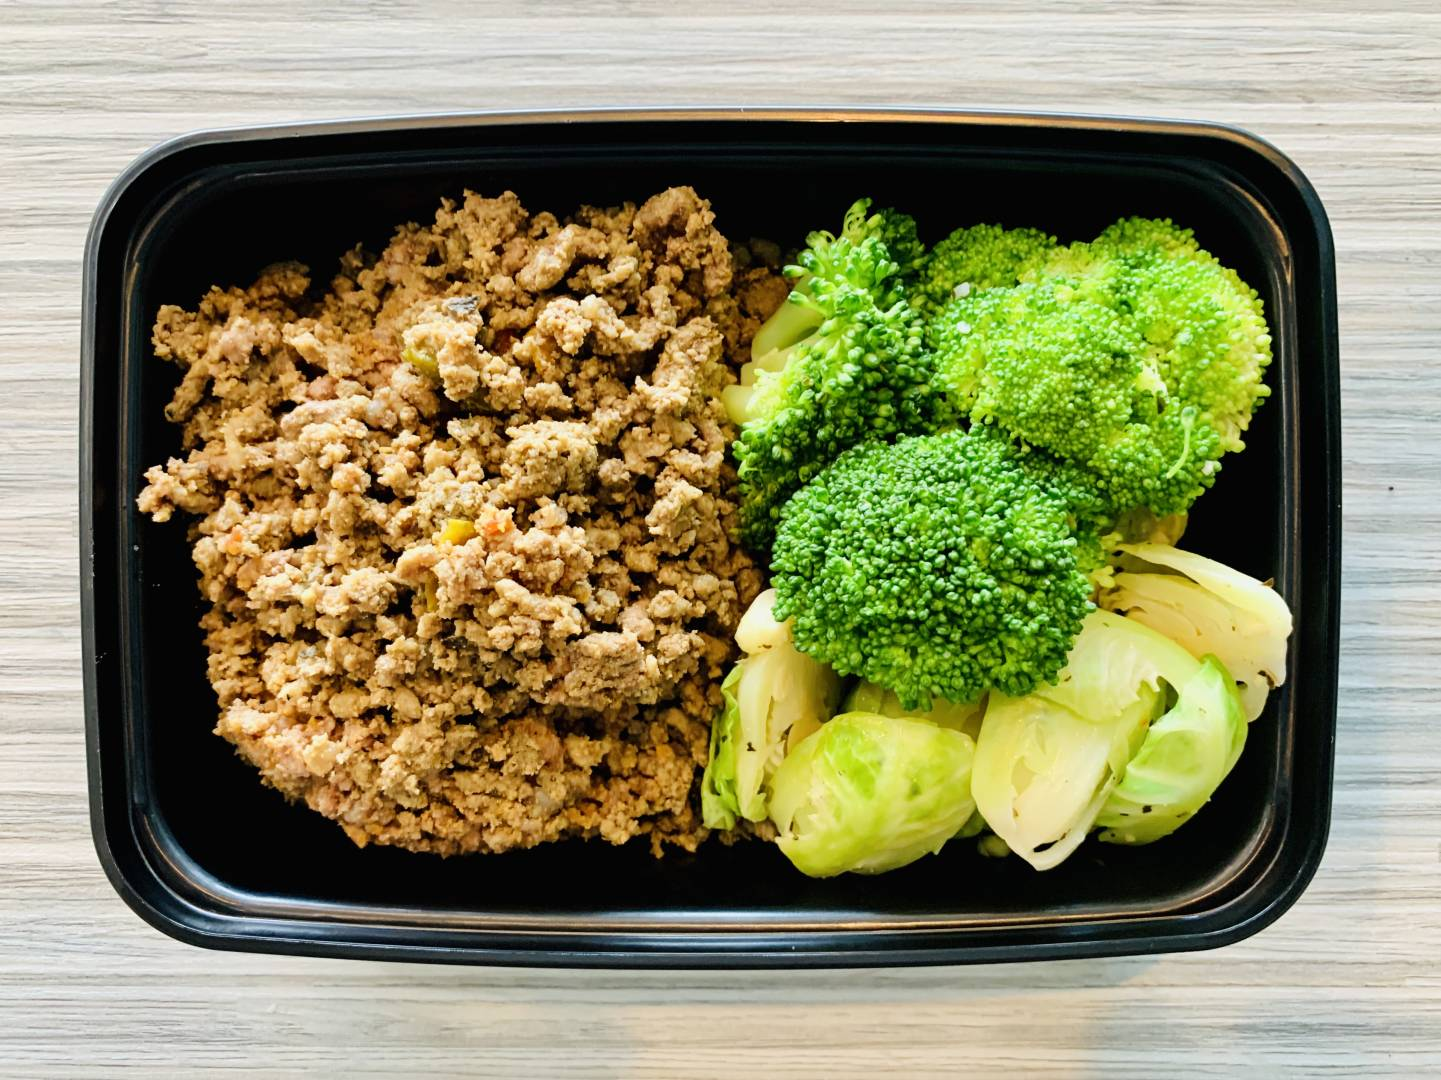 Ground Beef, Broccoli and Brussel Sprouts